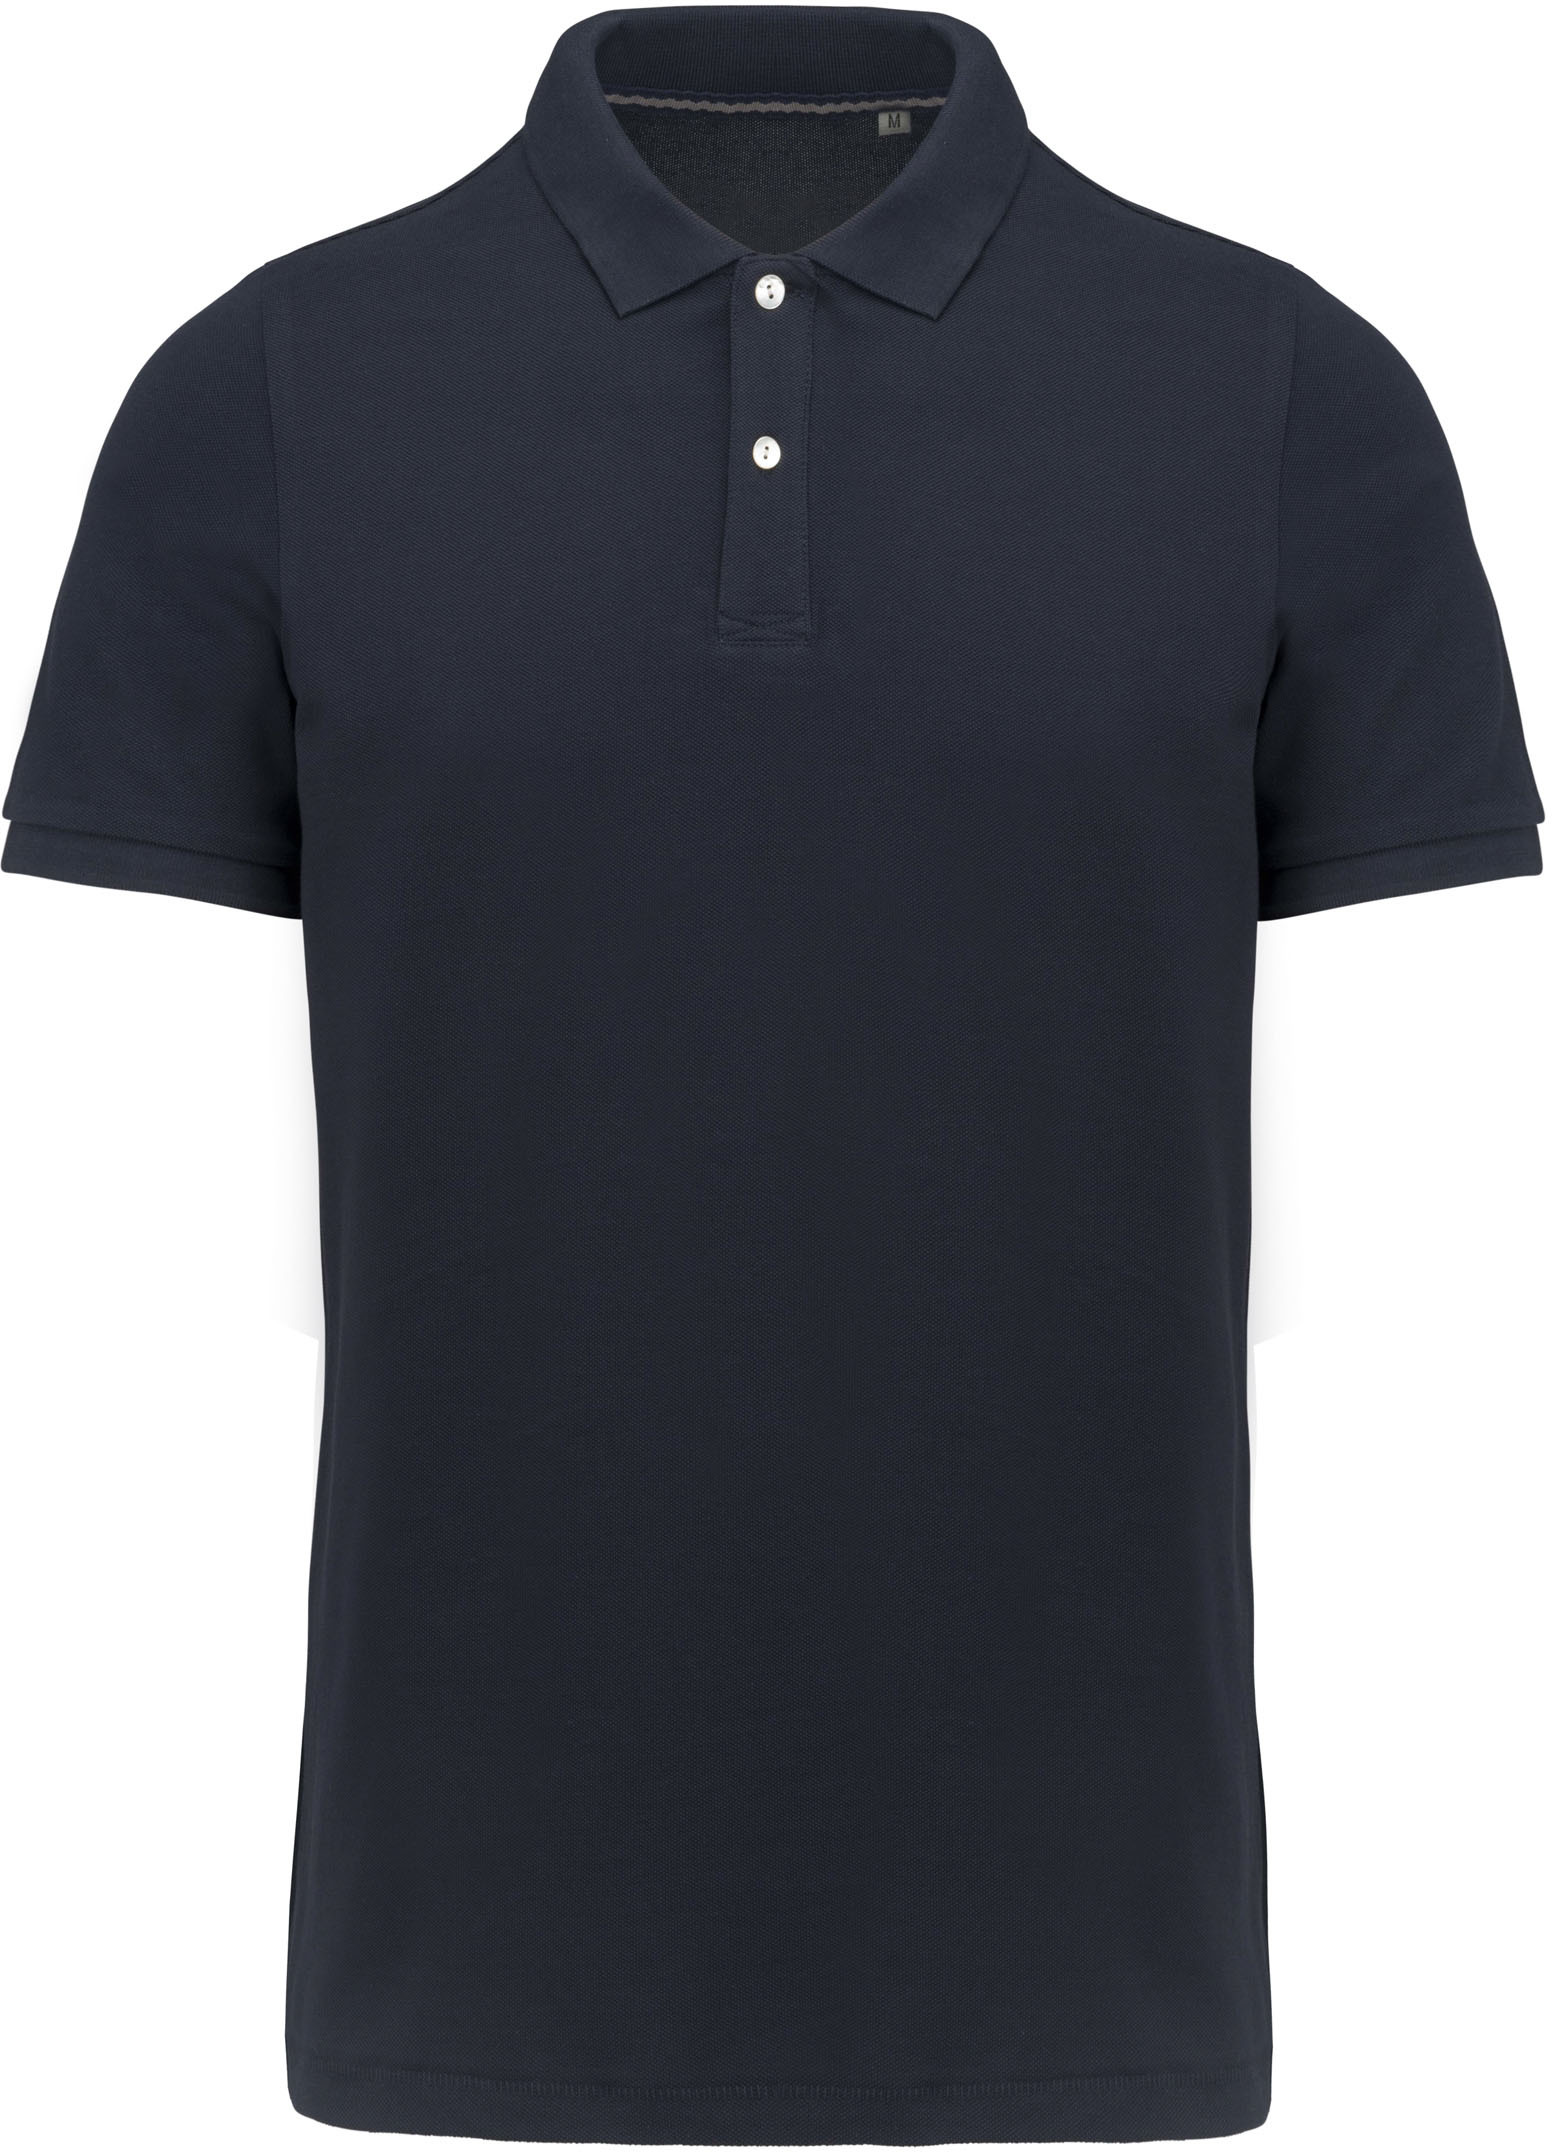 Polo Supima® manches courtes homme - 2-1539-2